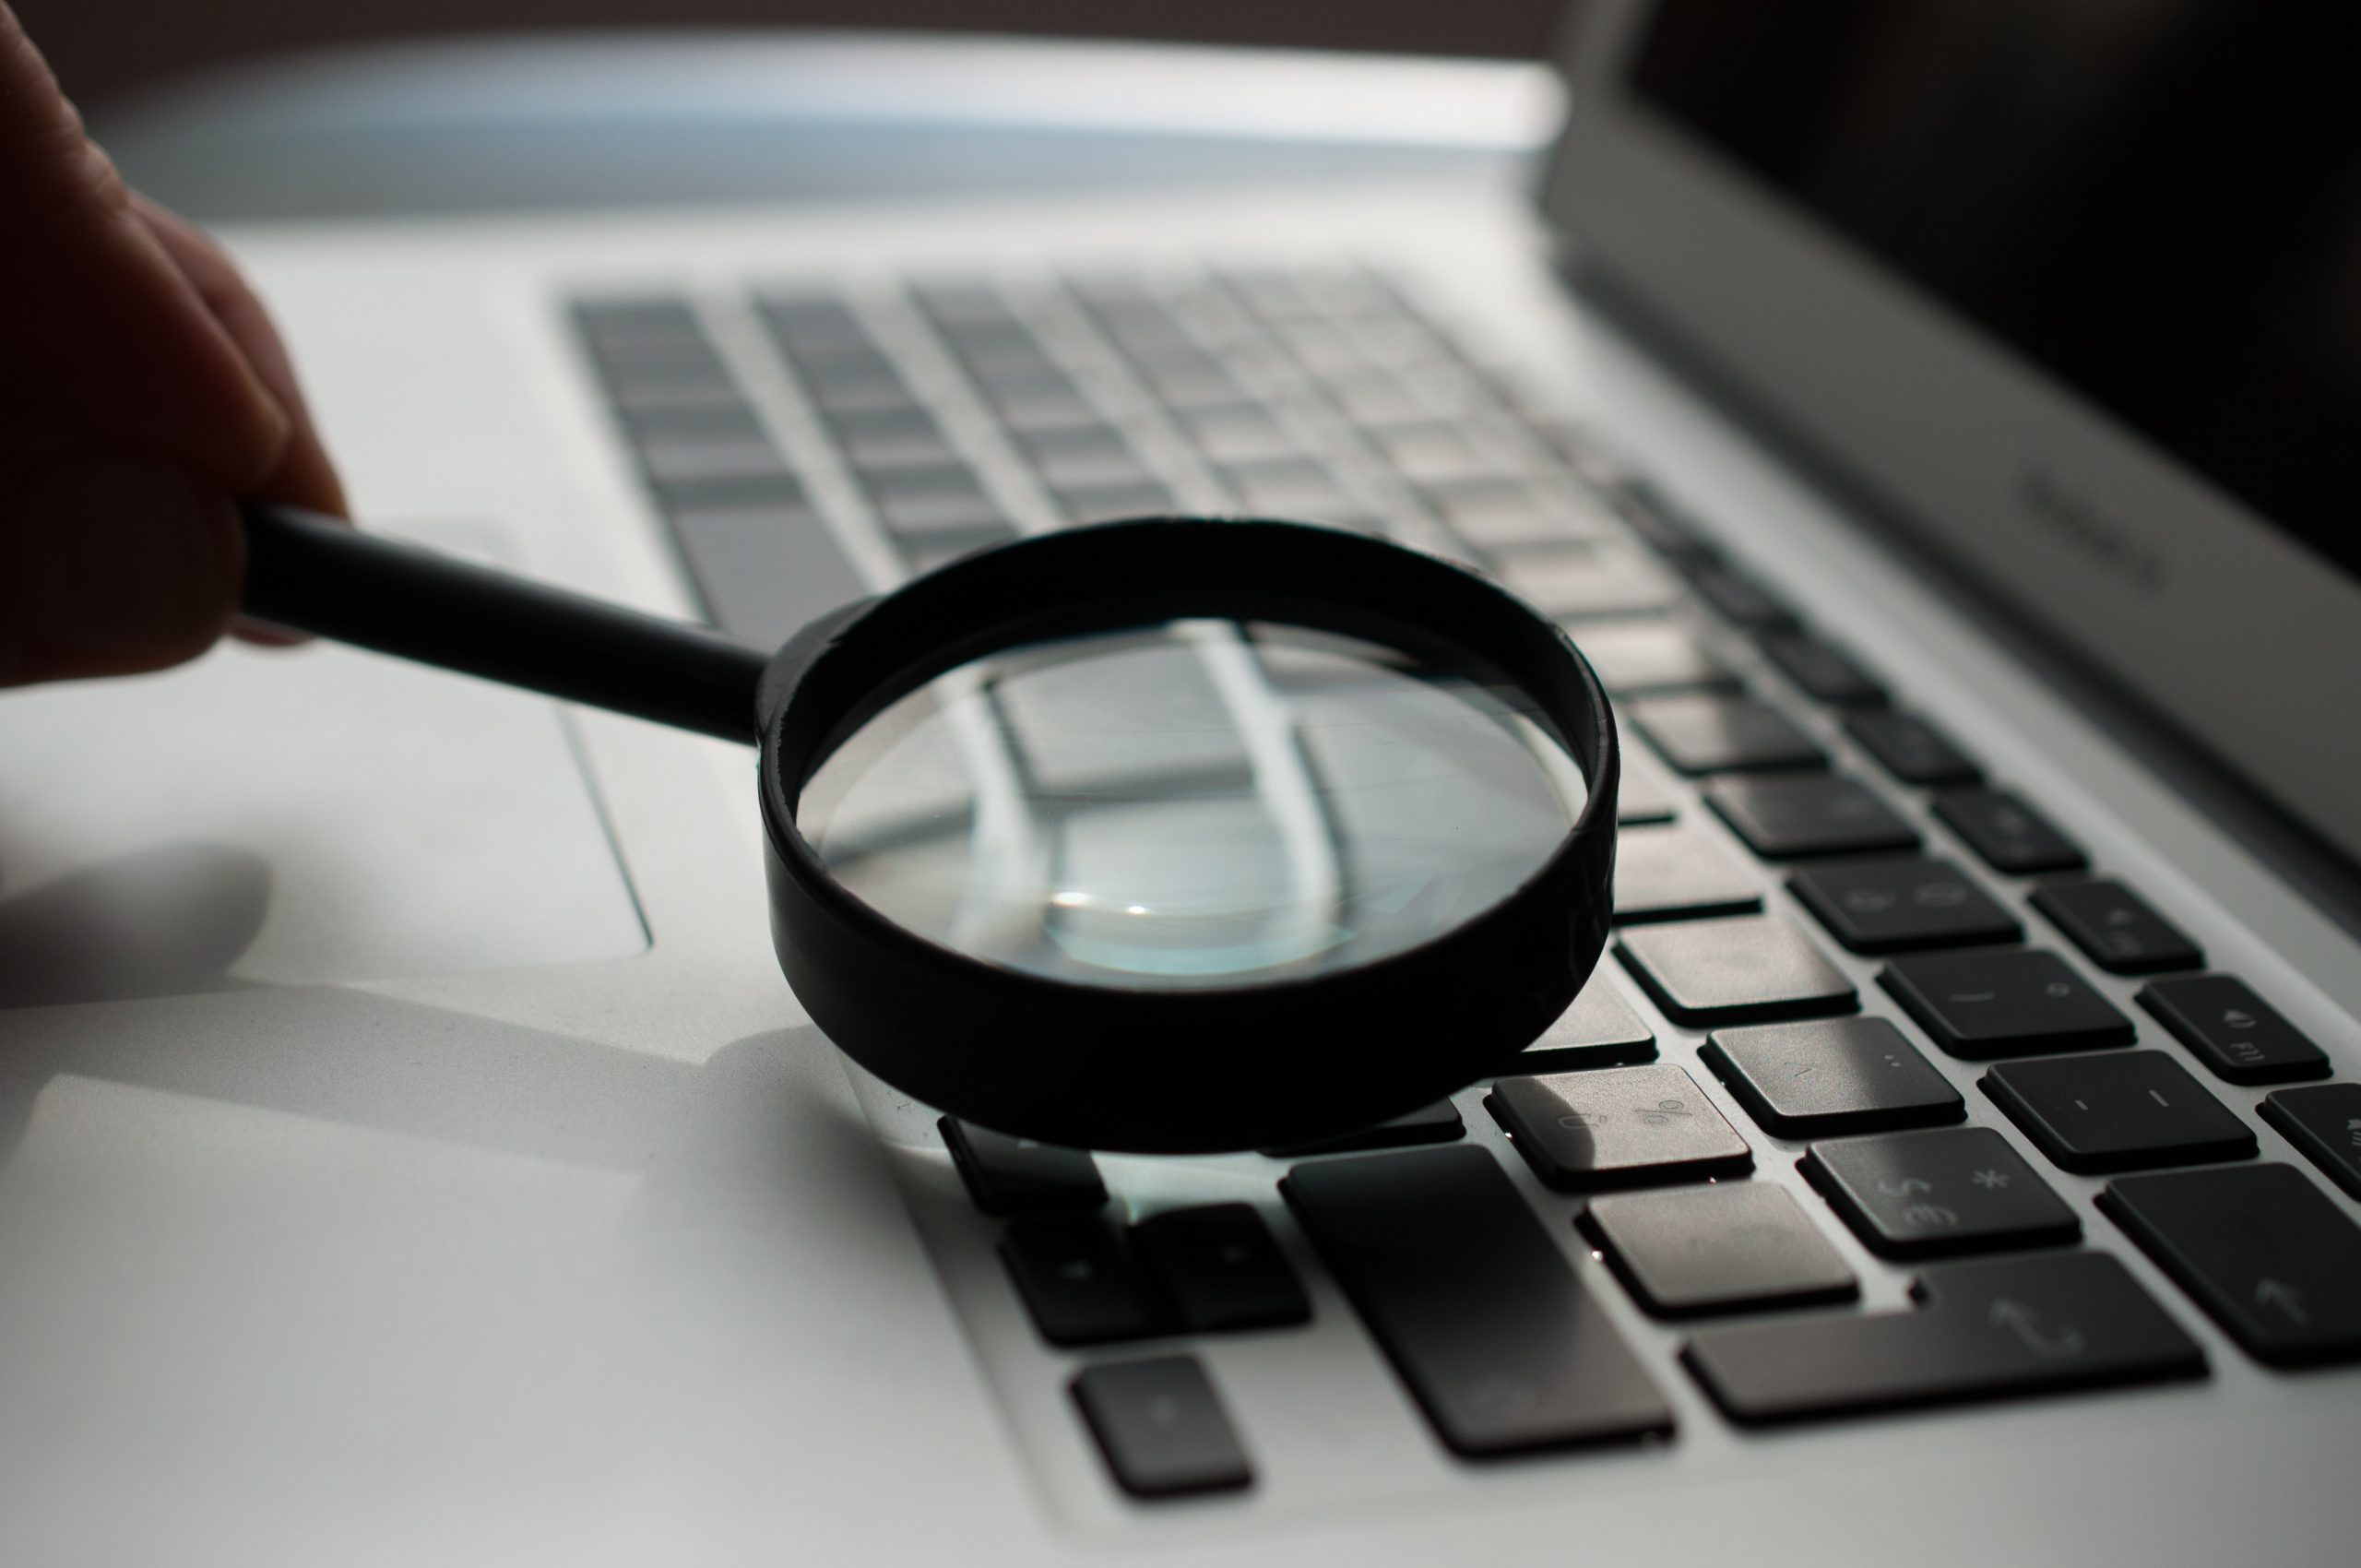 A detective's magnify glass ontop of a laptop